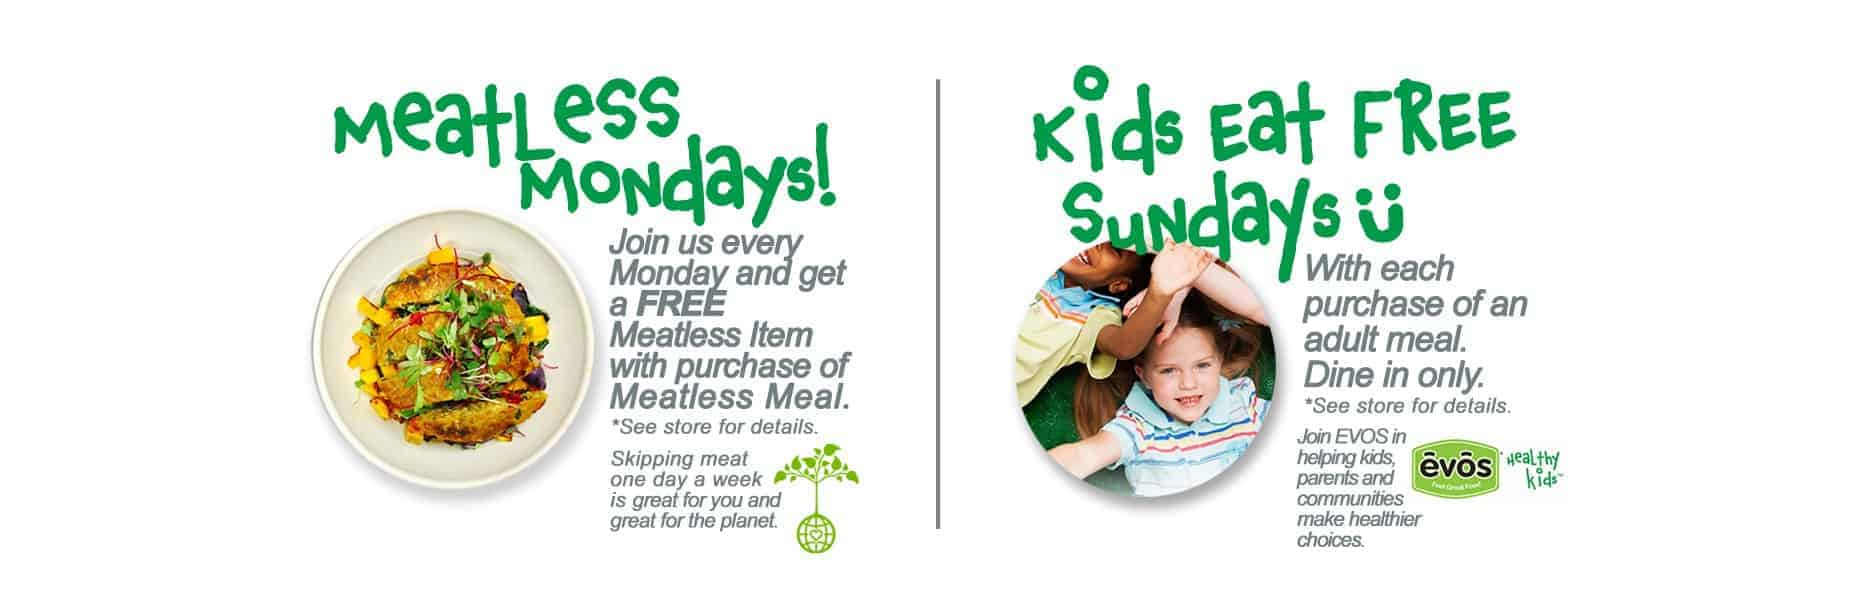 Meatless Monday - Kids Eat Free | EVOS